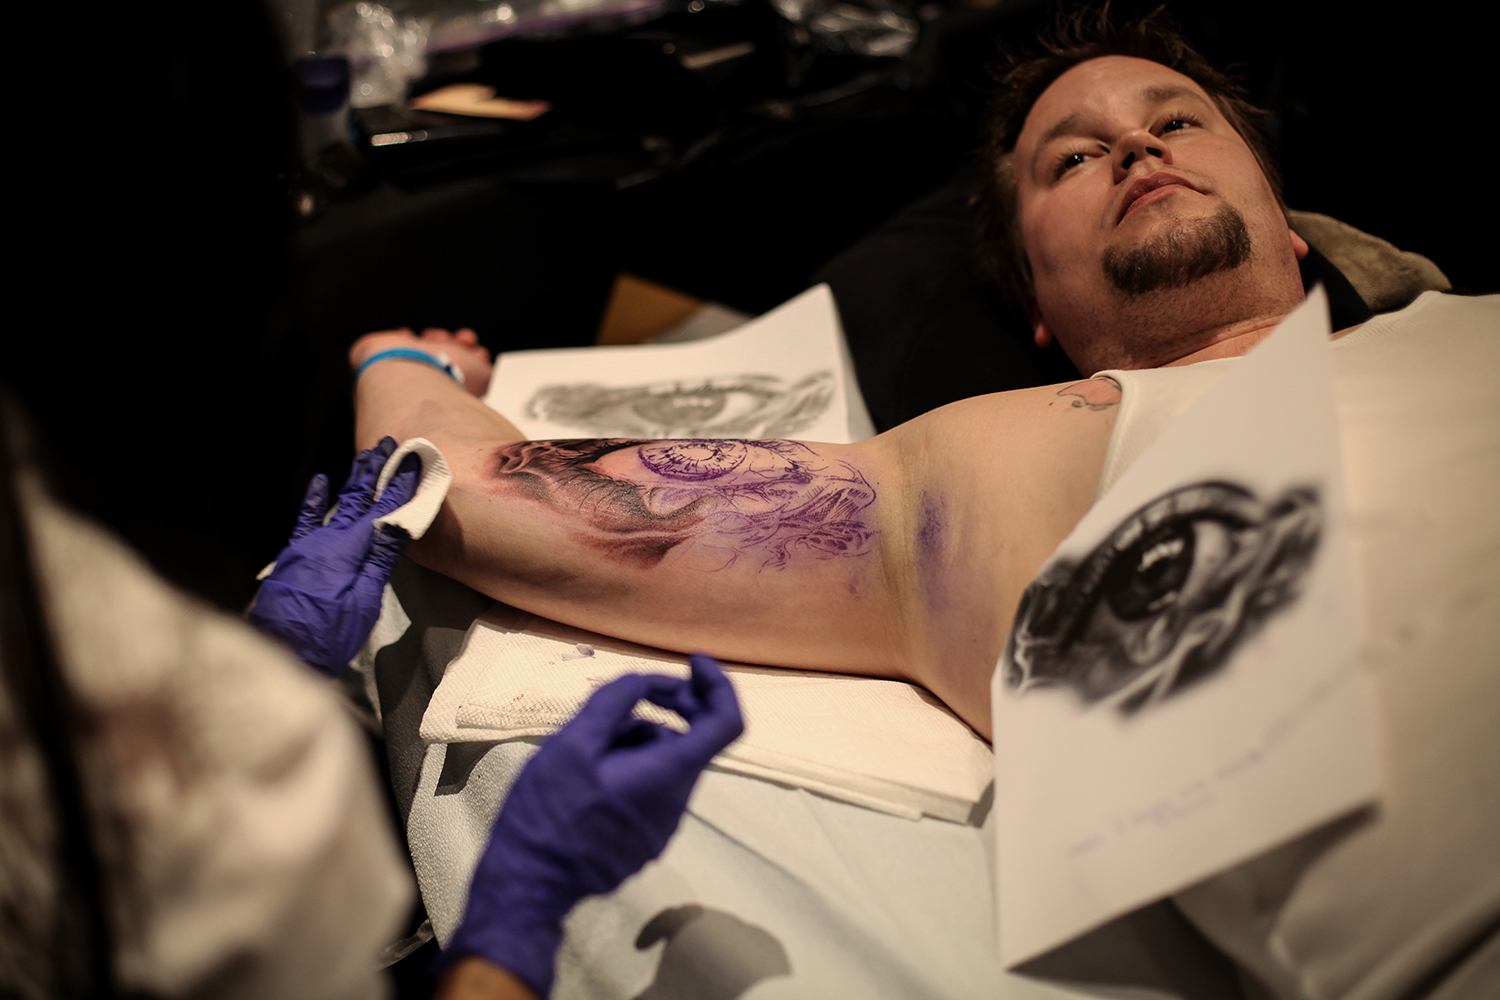 Adam Qureshi, left, from Montreal, Canada tattoos an eye on Ryan Chalmers from Toronto, Canada during the Motor City Tattoo Expo on Saturday, March 7, 2015 at the GM Renaissance Center in Detroit. Tim Galloway/Special to DFP